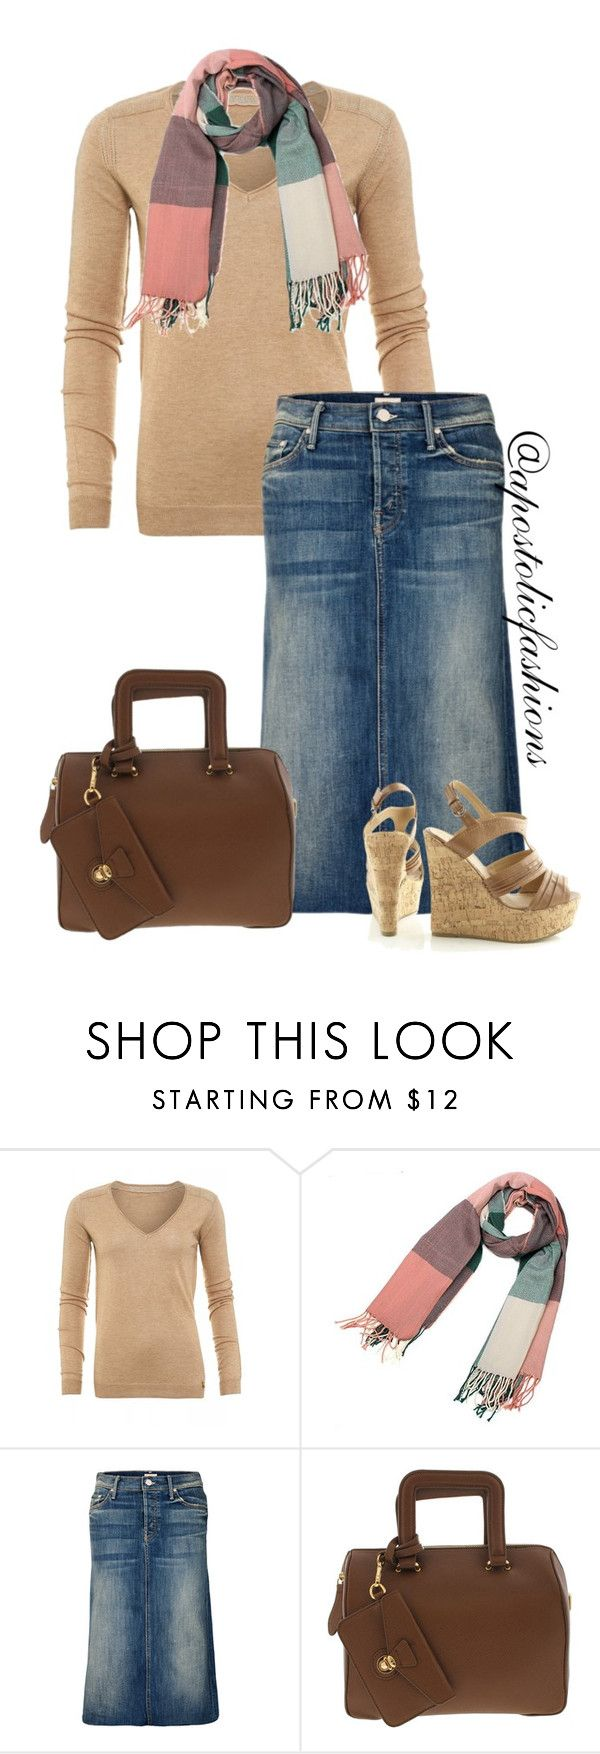 """""""Apostolic Fashions #1071"""" by apostolicfashions ❤ liked on Polyvore featuring Patrizia Pepe, Mother, women's clothing, women, female, woman, misses and juniors"""